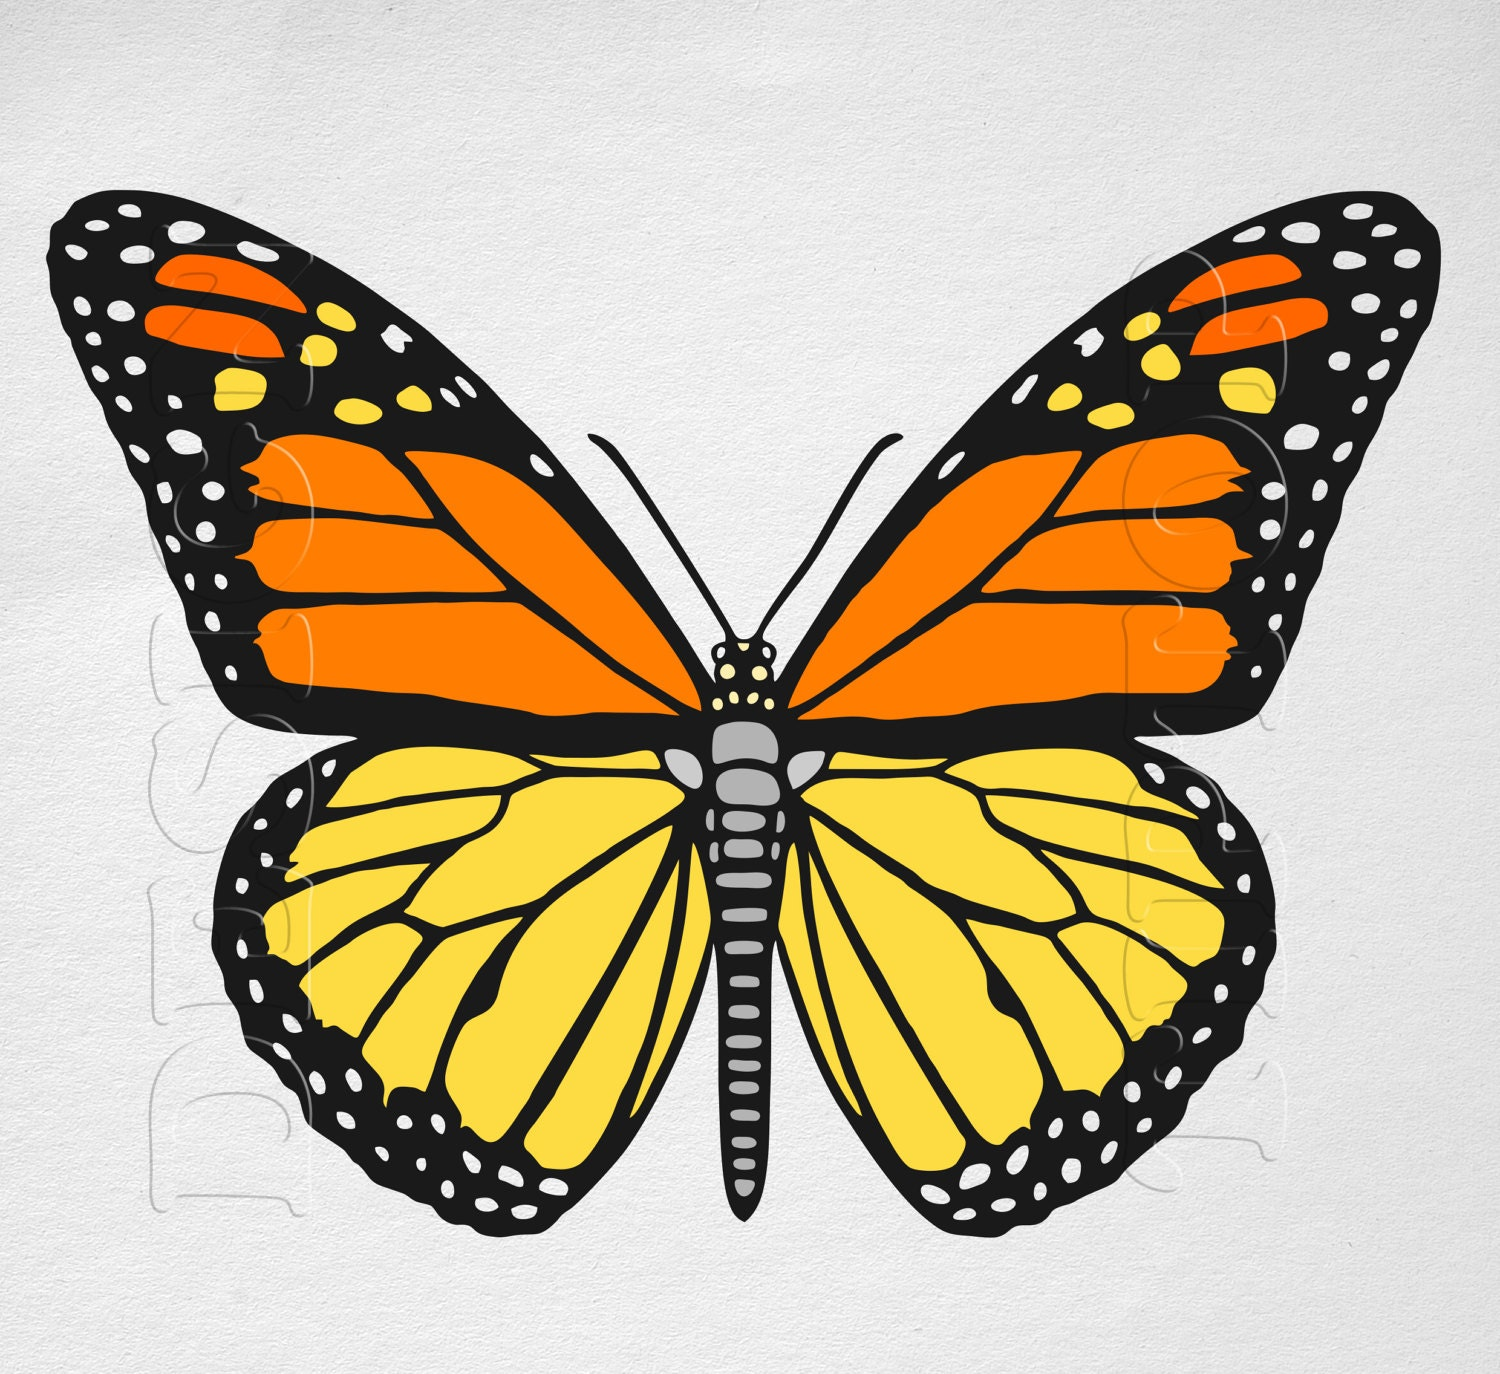 Butterfly SVG Monarch Butterfly print and cut files Cricut | Etsy